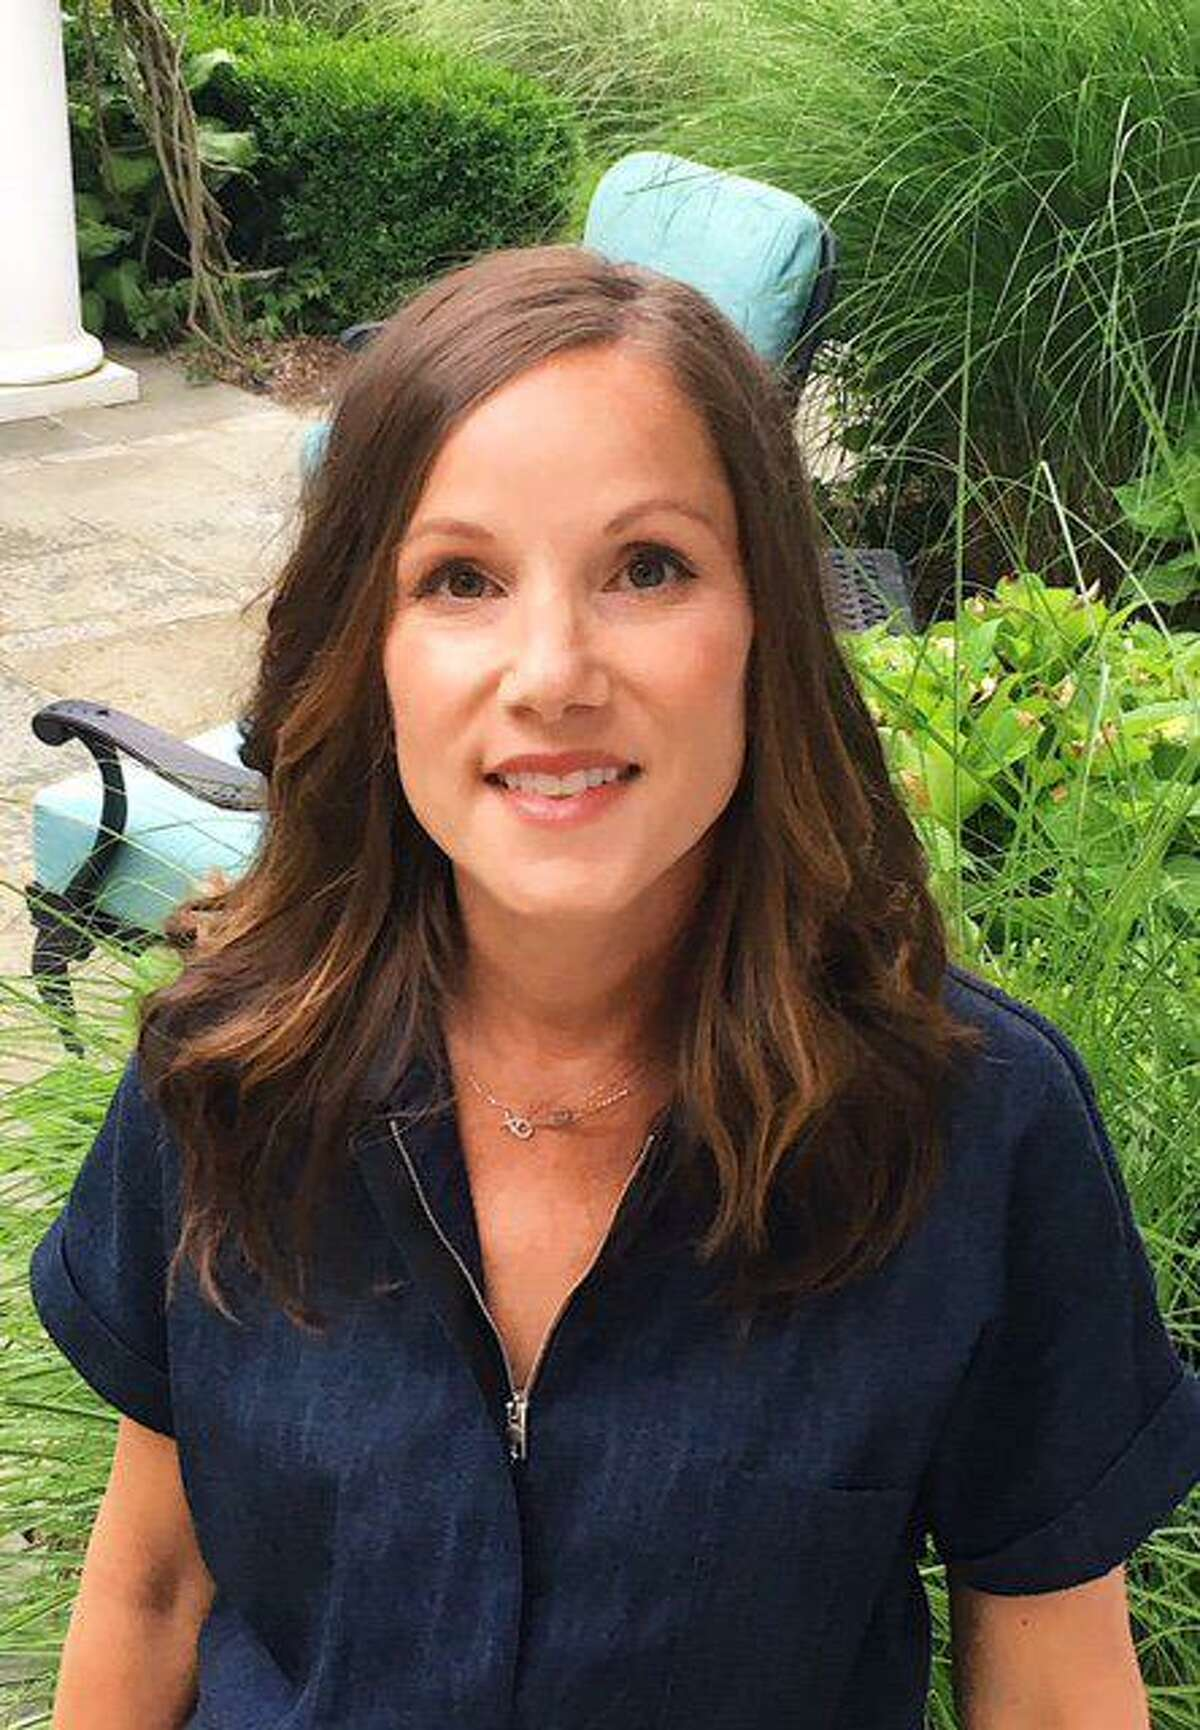 Sheri West, (pictured), who has been a member of the New Canaan Board of Education, is also the founder, and CEO of the non-profit organization LiveGirl. West gives her opinion in this guest column about what she feels people could build the future as.